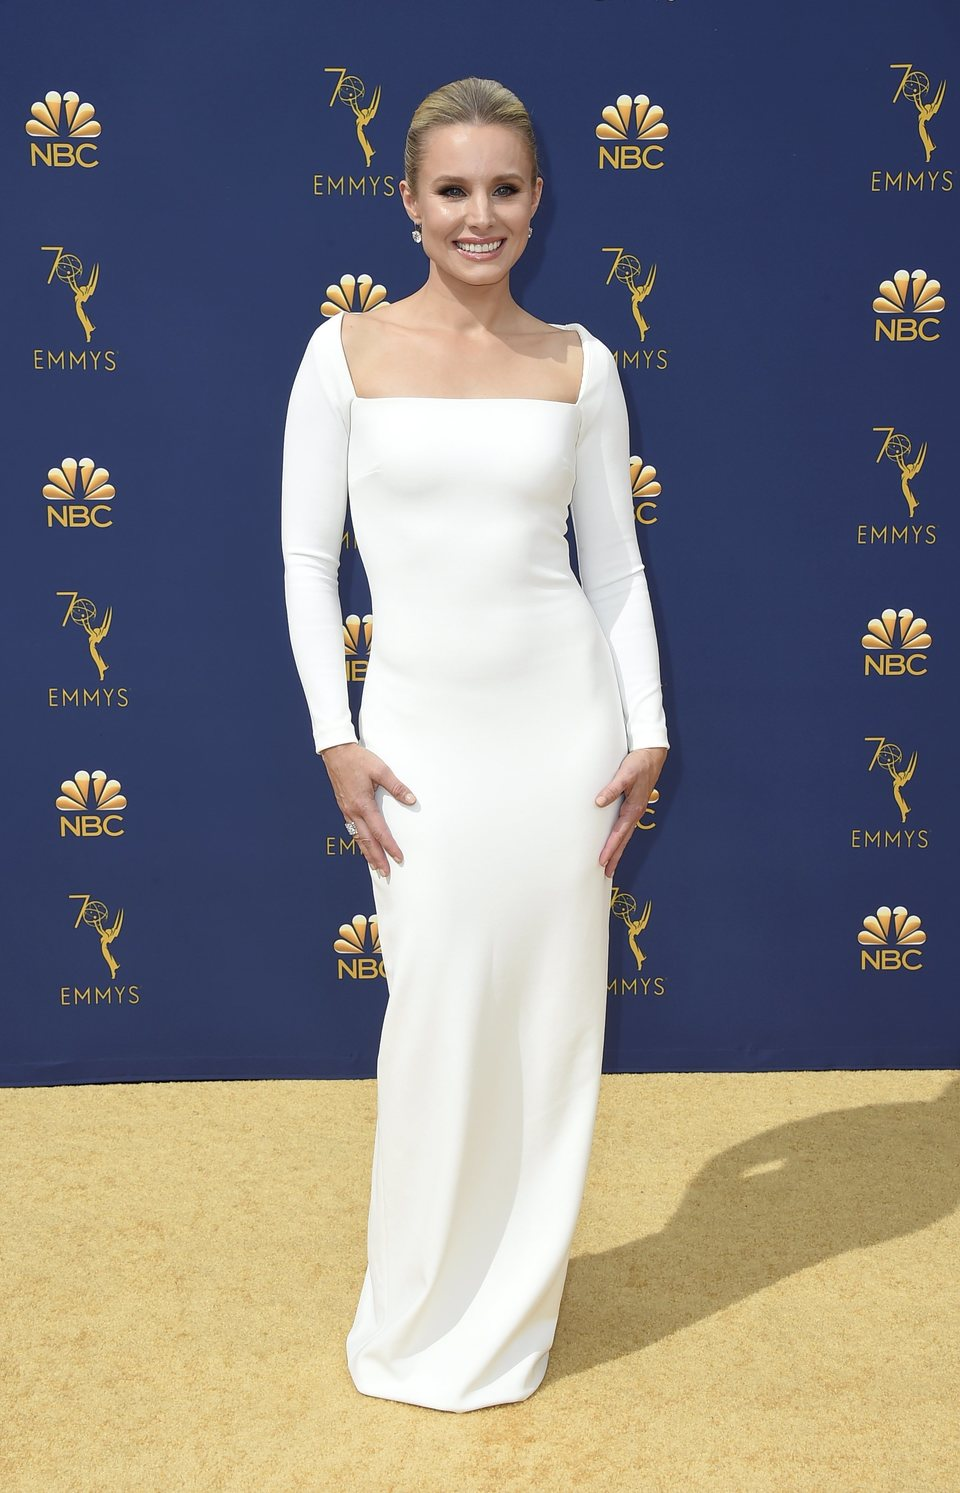 Kristen Bell at the Emmys 2018 red carpet